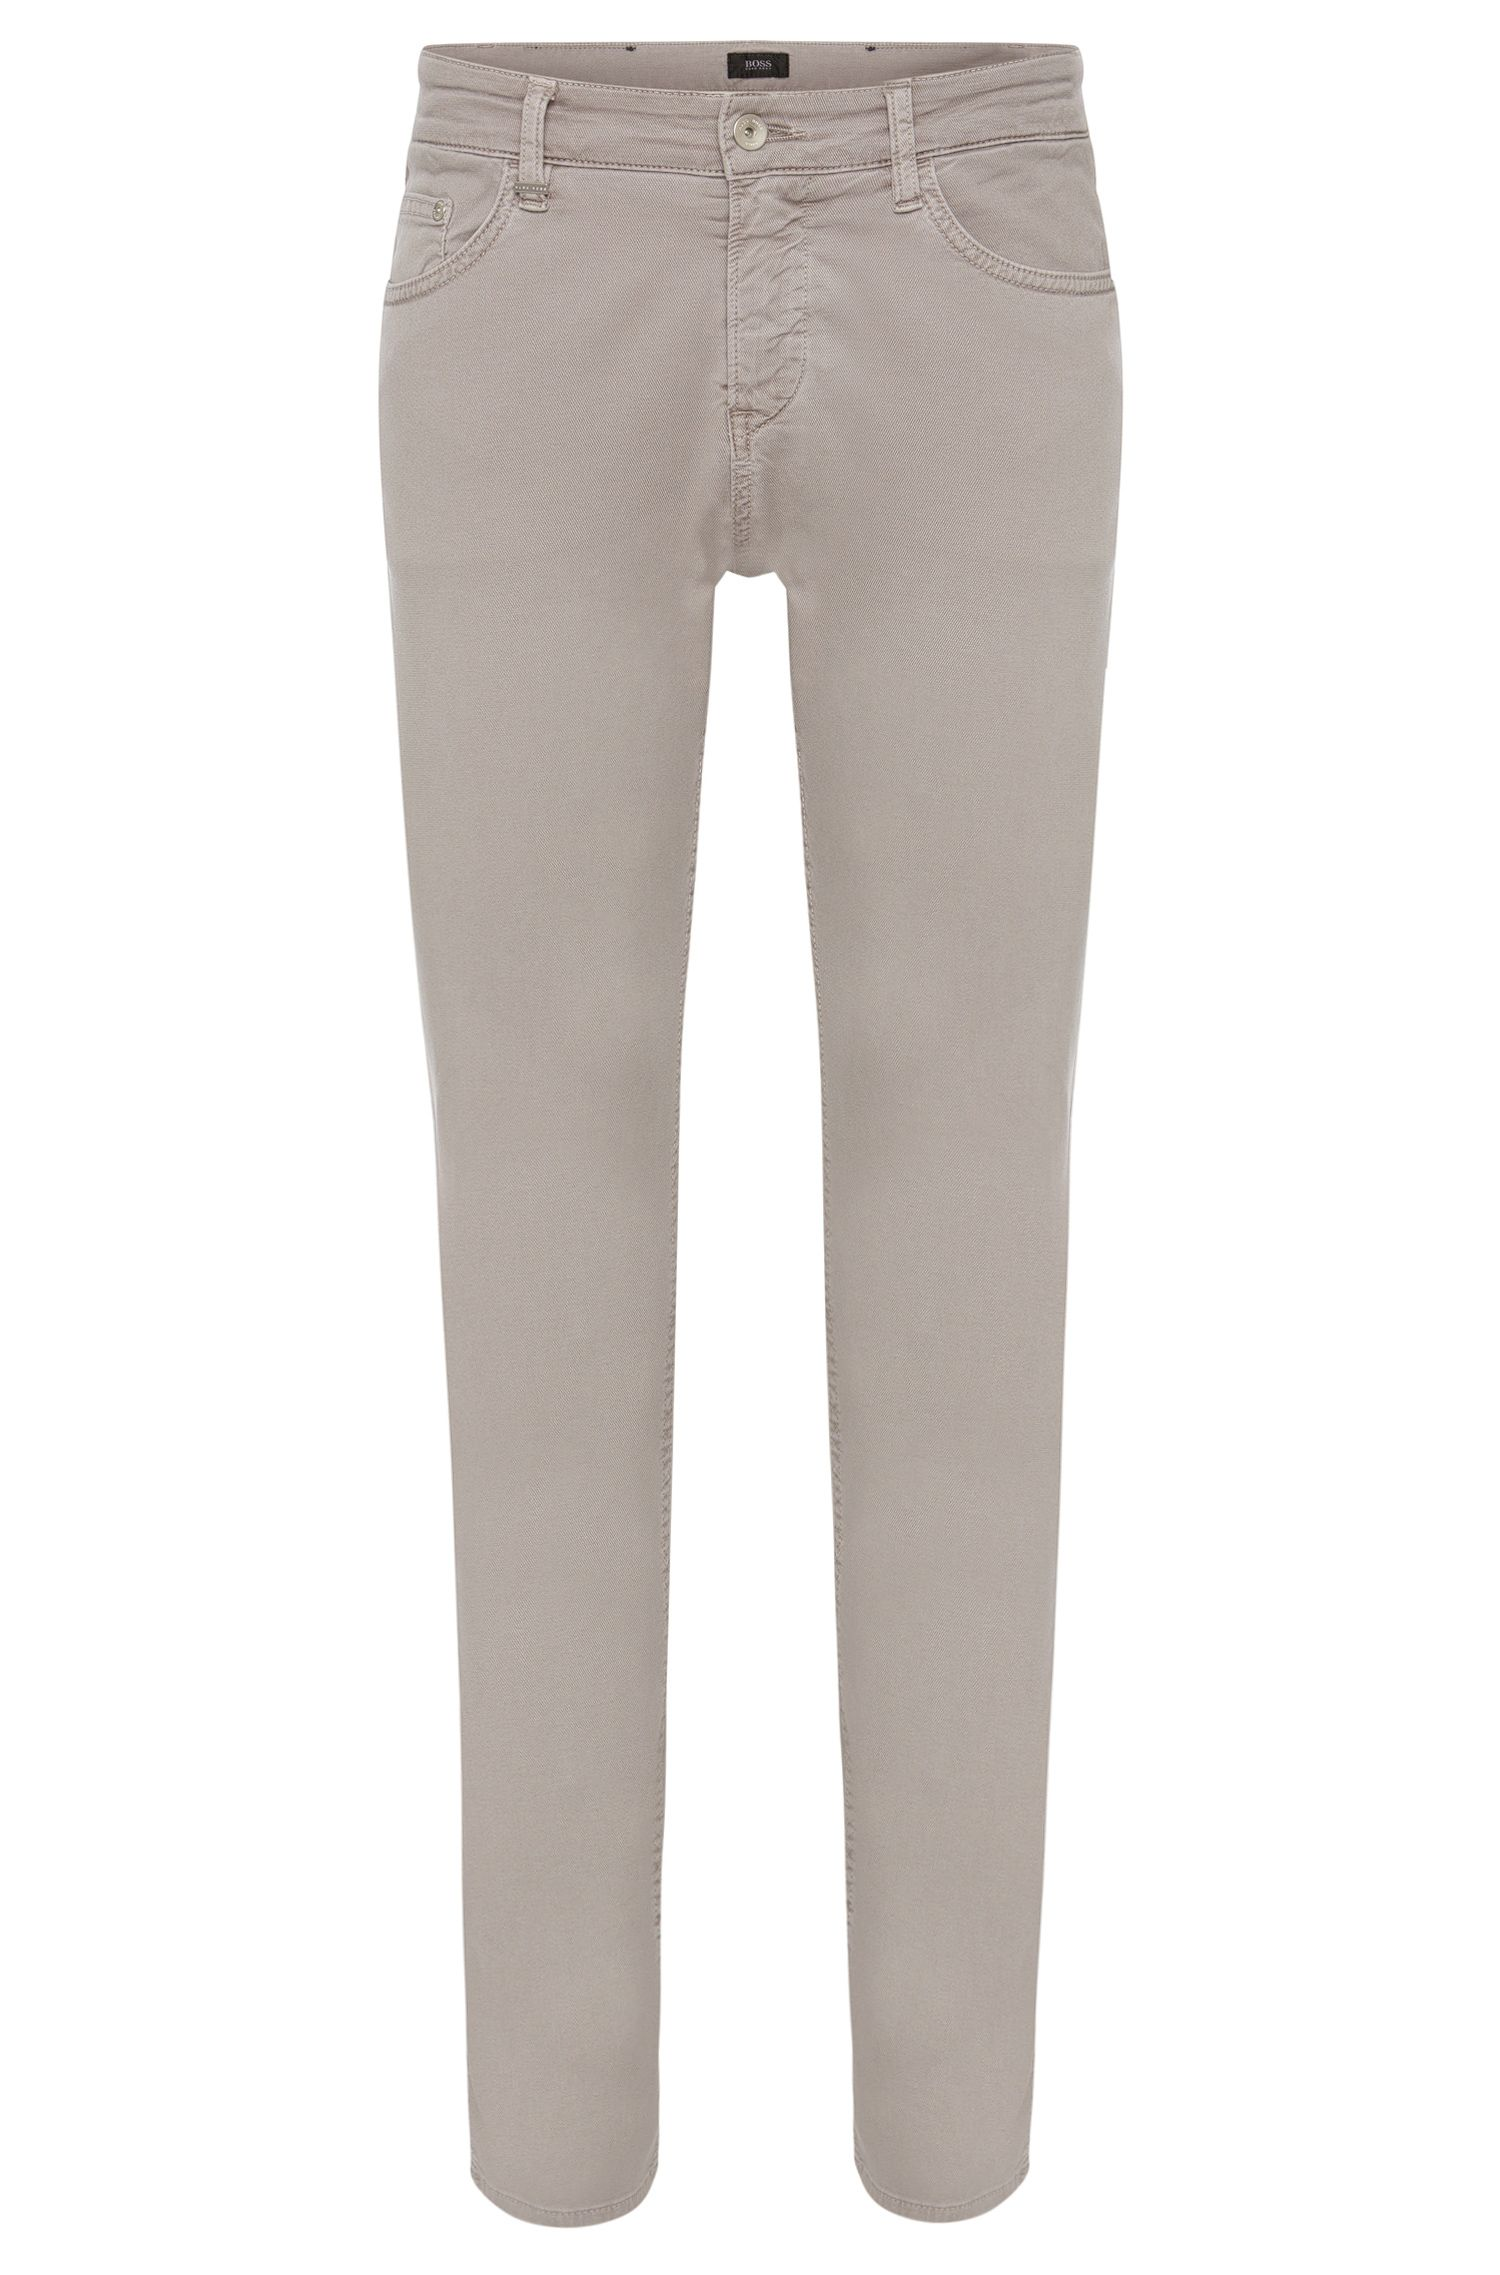 Jeans Slim Fit en coton stretch : « Delaware3-20 »